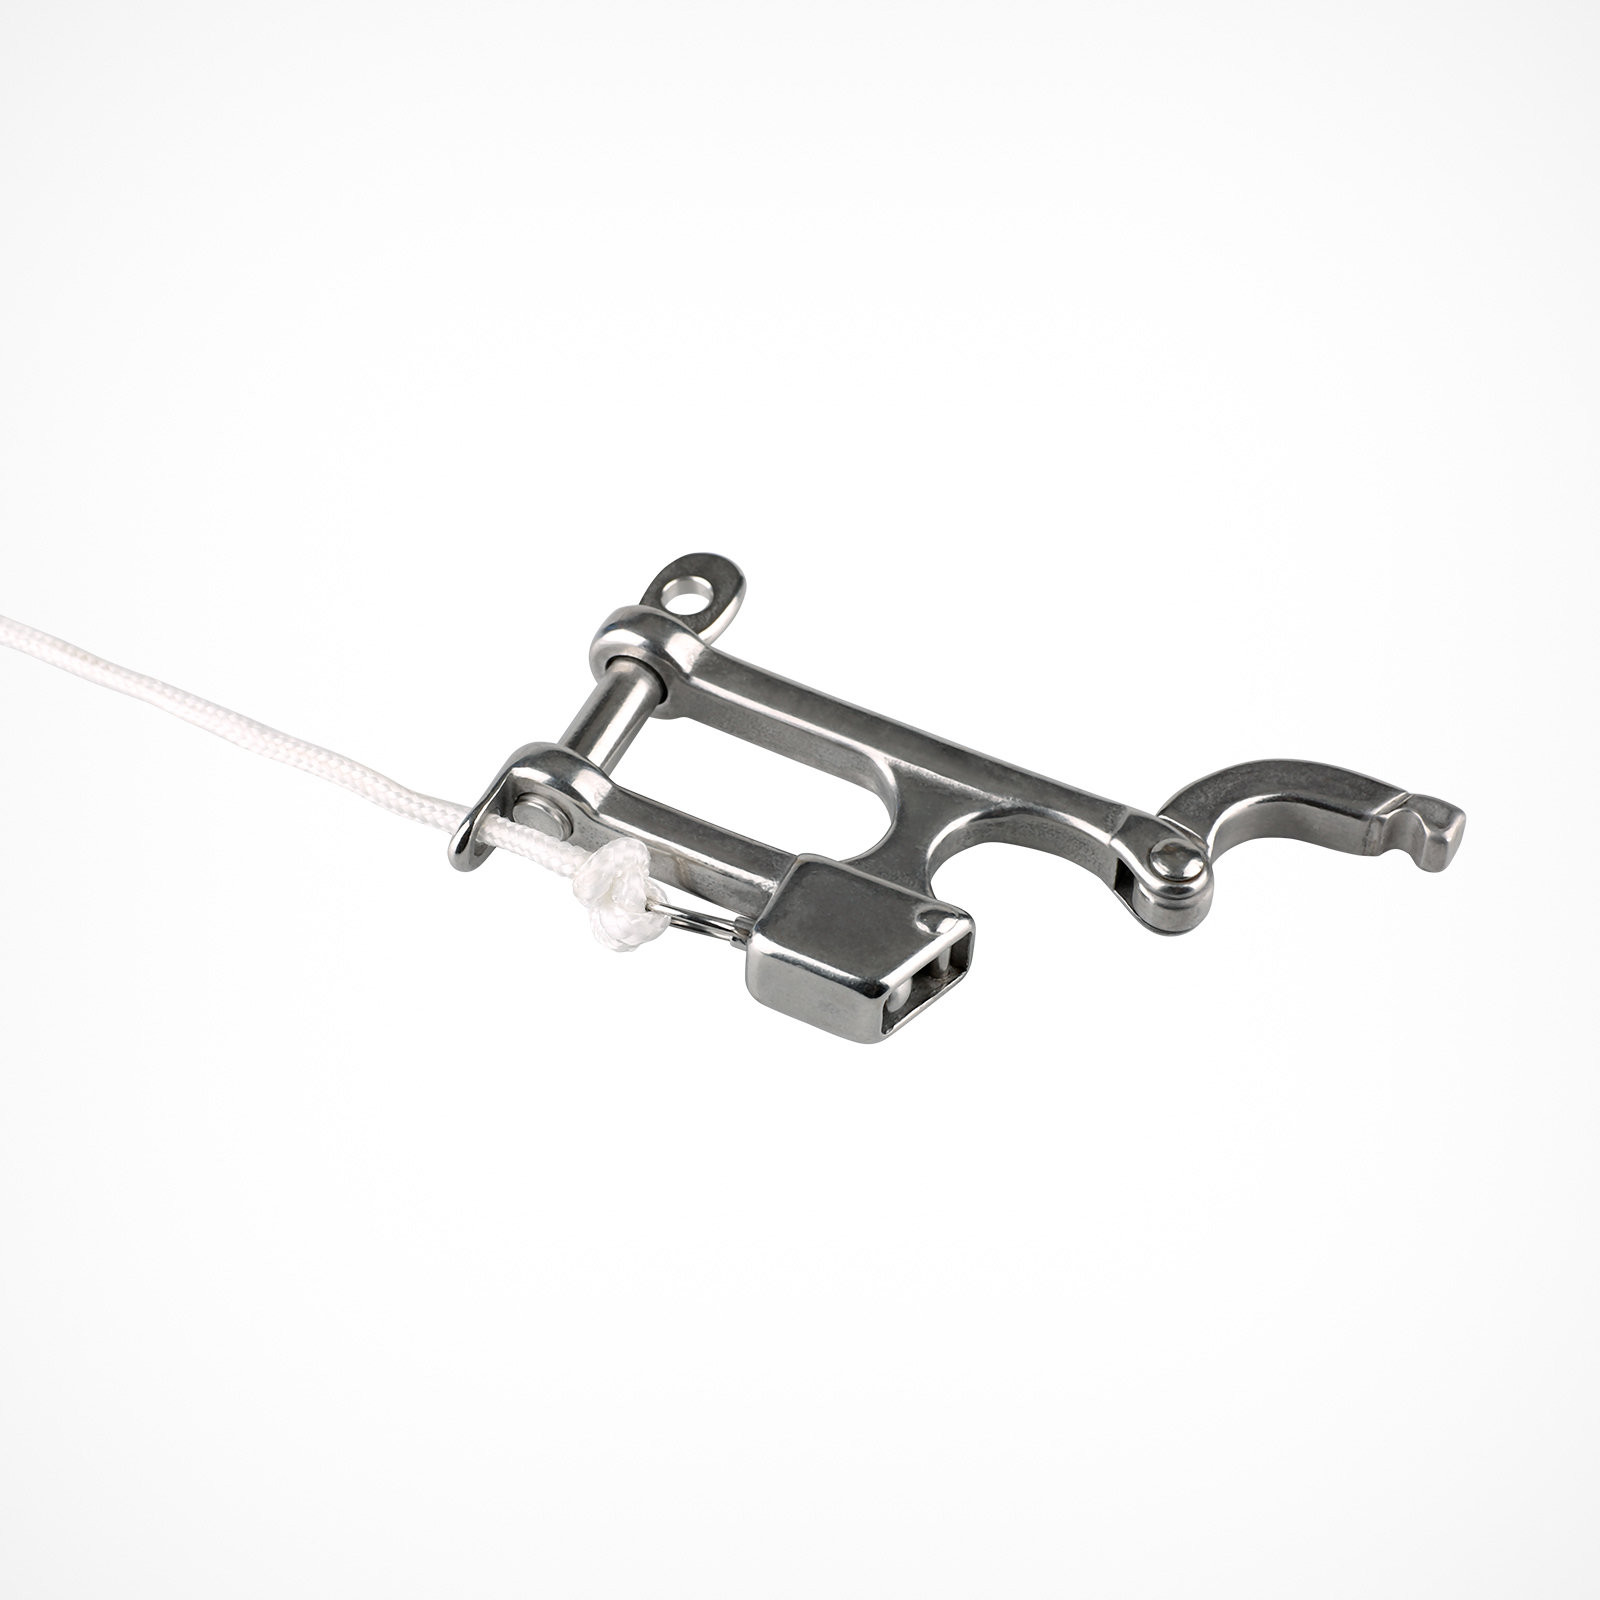 Mesle Quick Release for Towables and Fun-Tubes, Safety Device, Product image